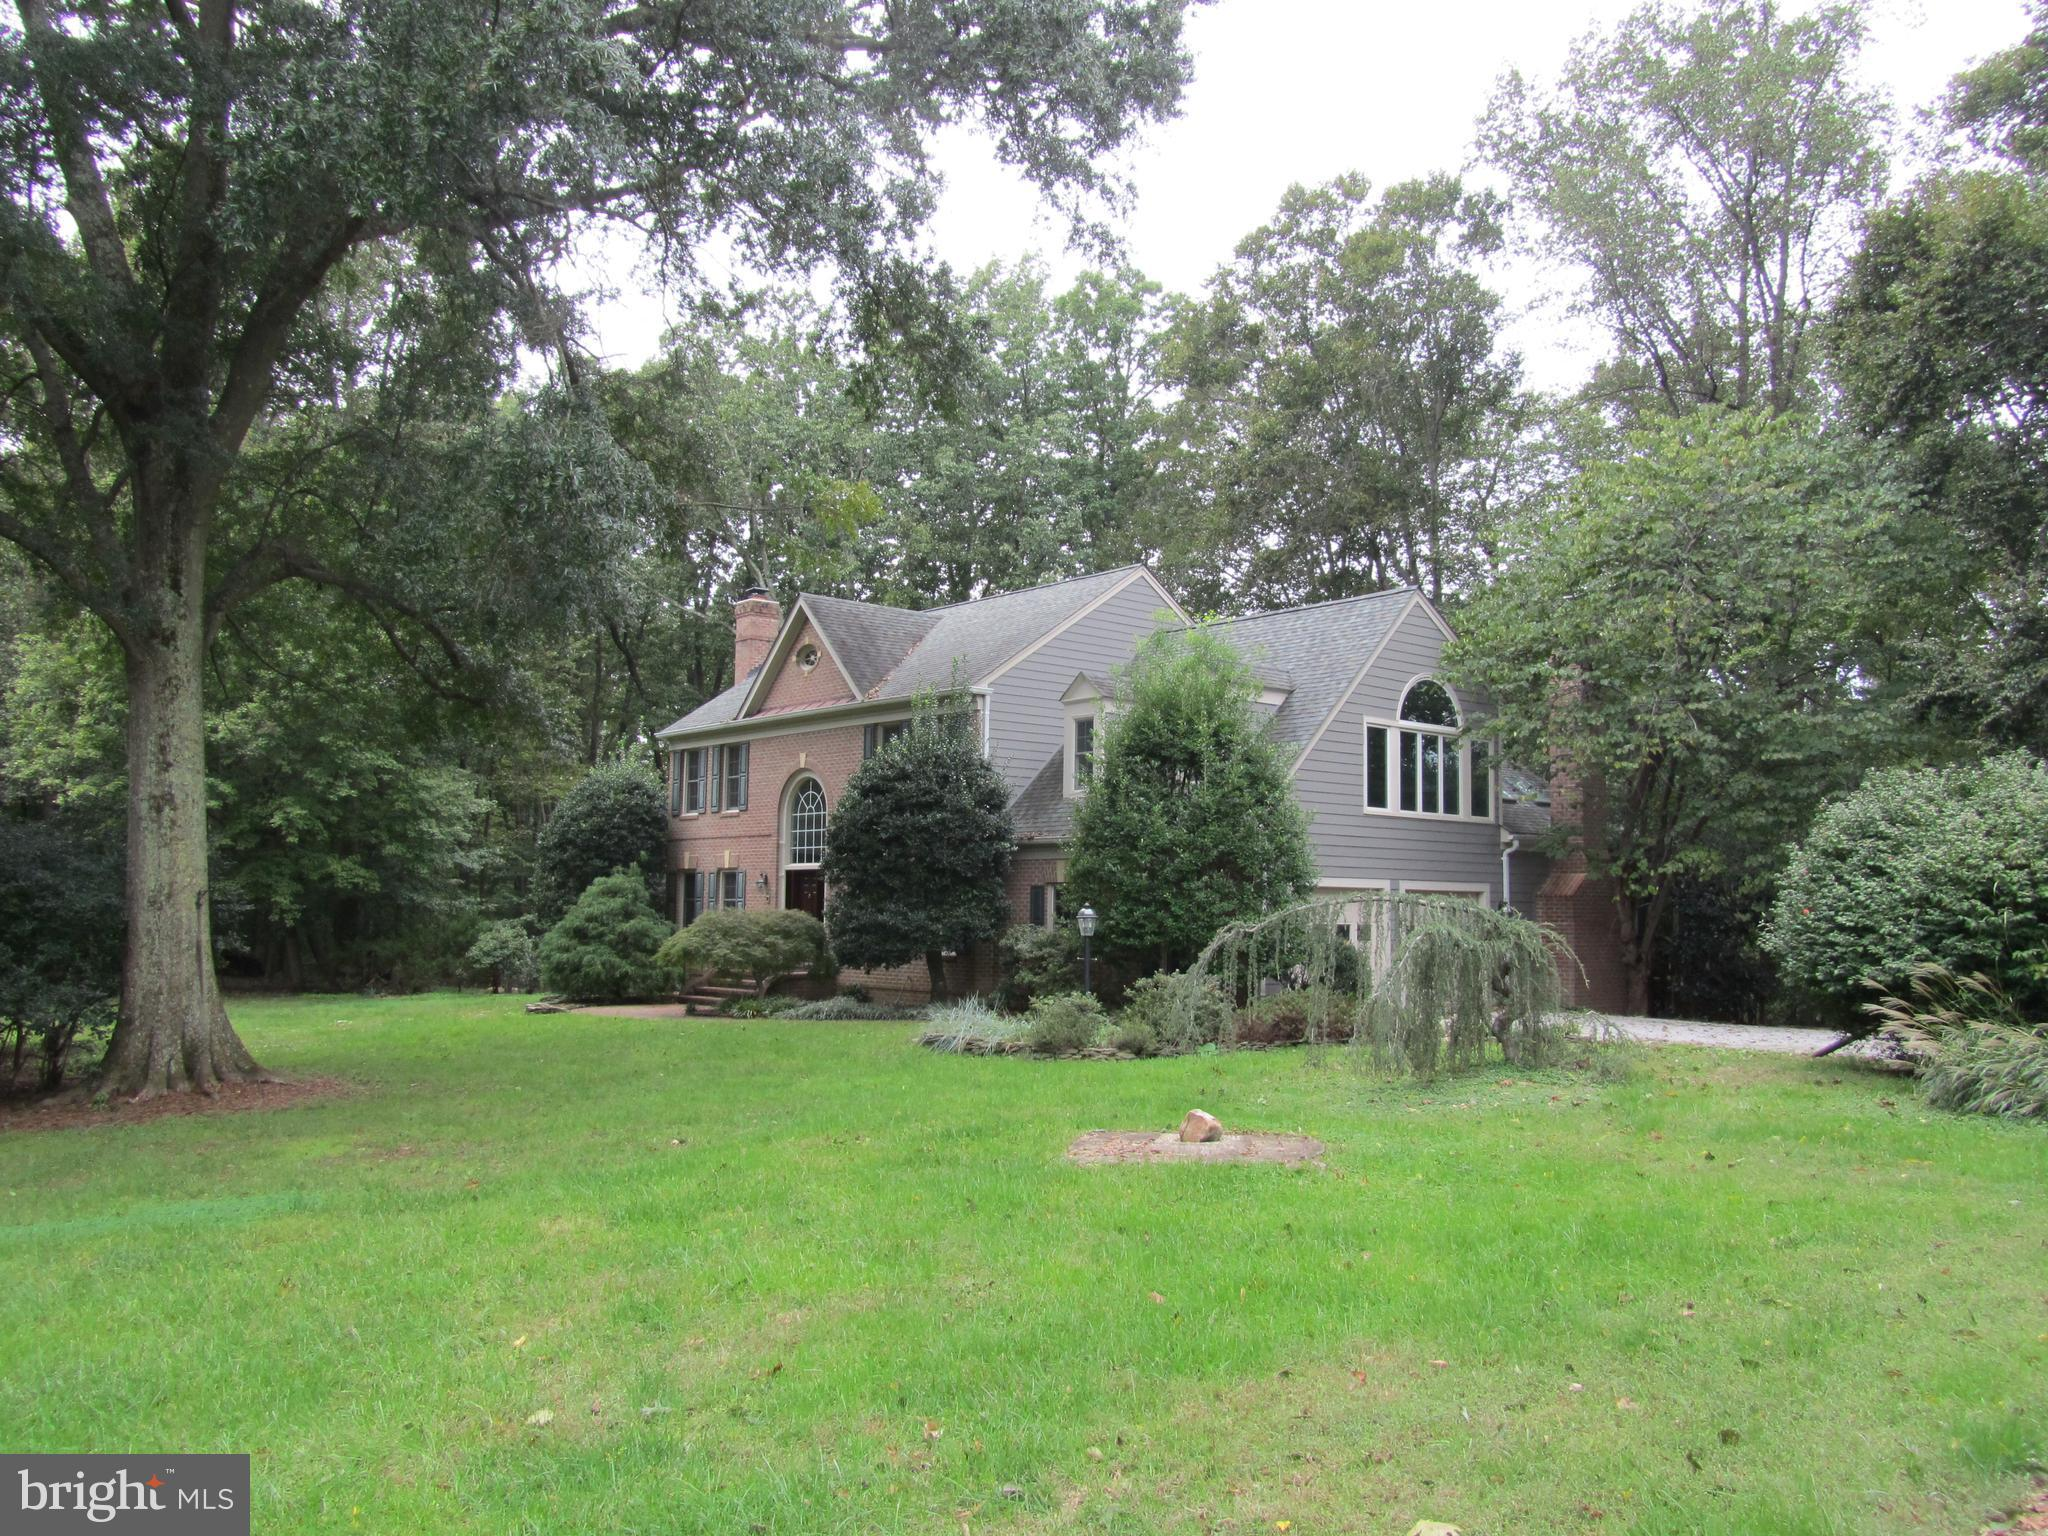 **NO HOA**Tired of look alike crowded S/D houses?**2 ac Lorton**Mason Neck, Hidden Gem of Fx.Co**backs to horse farm,** new hardwood flrs., 2 car gar., Gourmet Kit.w/ high-end appl, Brick & Hardi-Plank siding, sauna & sun porc**1000's of acs of Parkland** Convenient.easy com.20 Miles to DC,30 min.to Arl.,Alex., Close to Ft.Belvoir, Old Town,@ 2VRE stations, restaurants, shopping,**